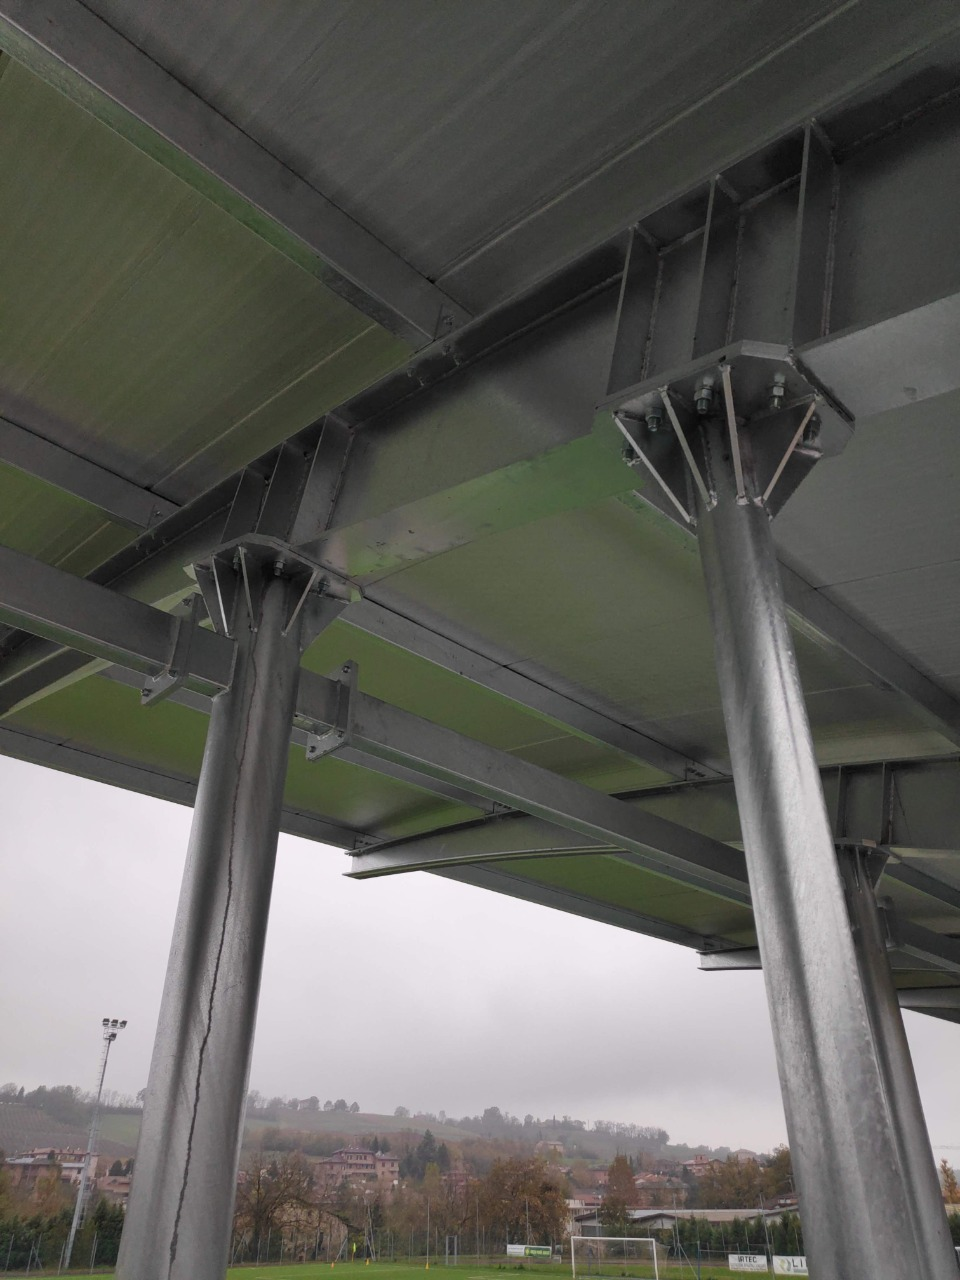 Gallery foto n.3 Overhanging cover - Football field